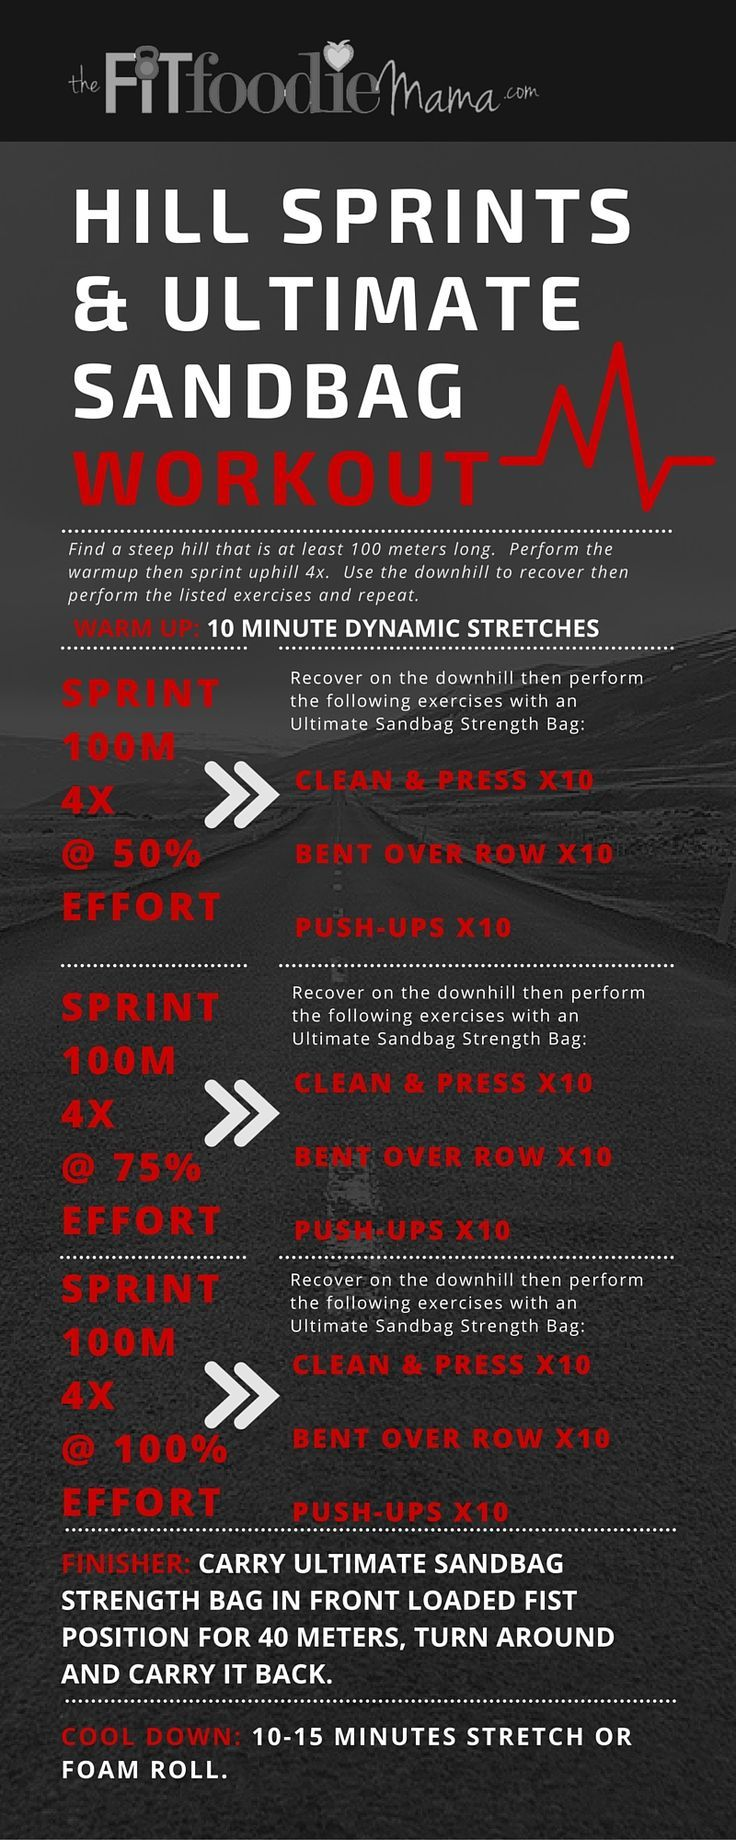 Hill Sprints & Ultimate Sandbag Workout for Runners. Build strength and conditioning with this hill sprint workout that incorporates a mix of sprint intervals running up the hill and strength exercises with the sandbag. It will help to improve both speed and endurance. TheFitFoodieMama.com